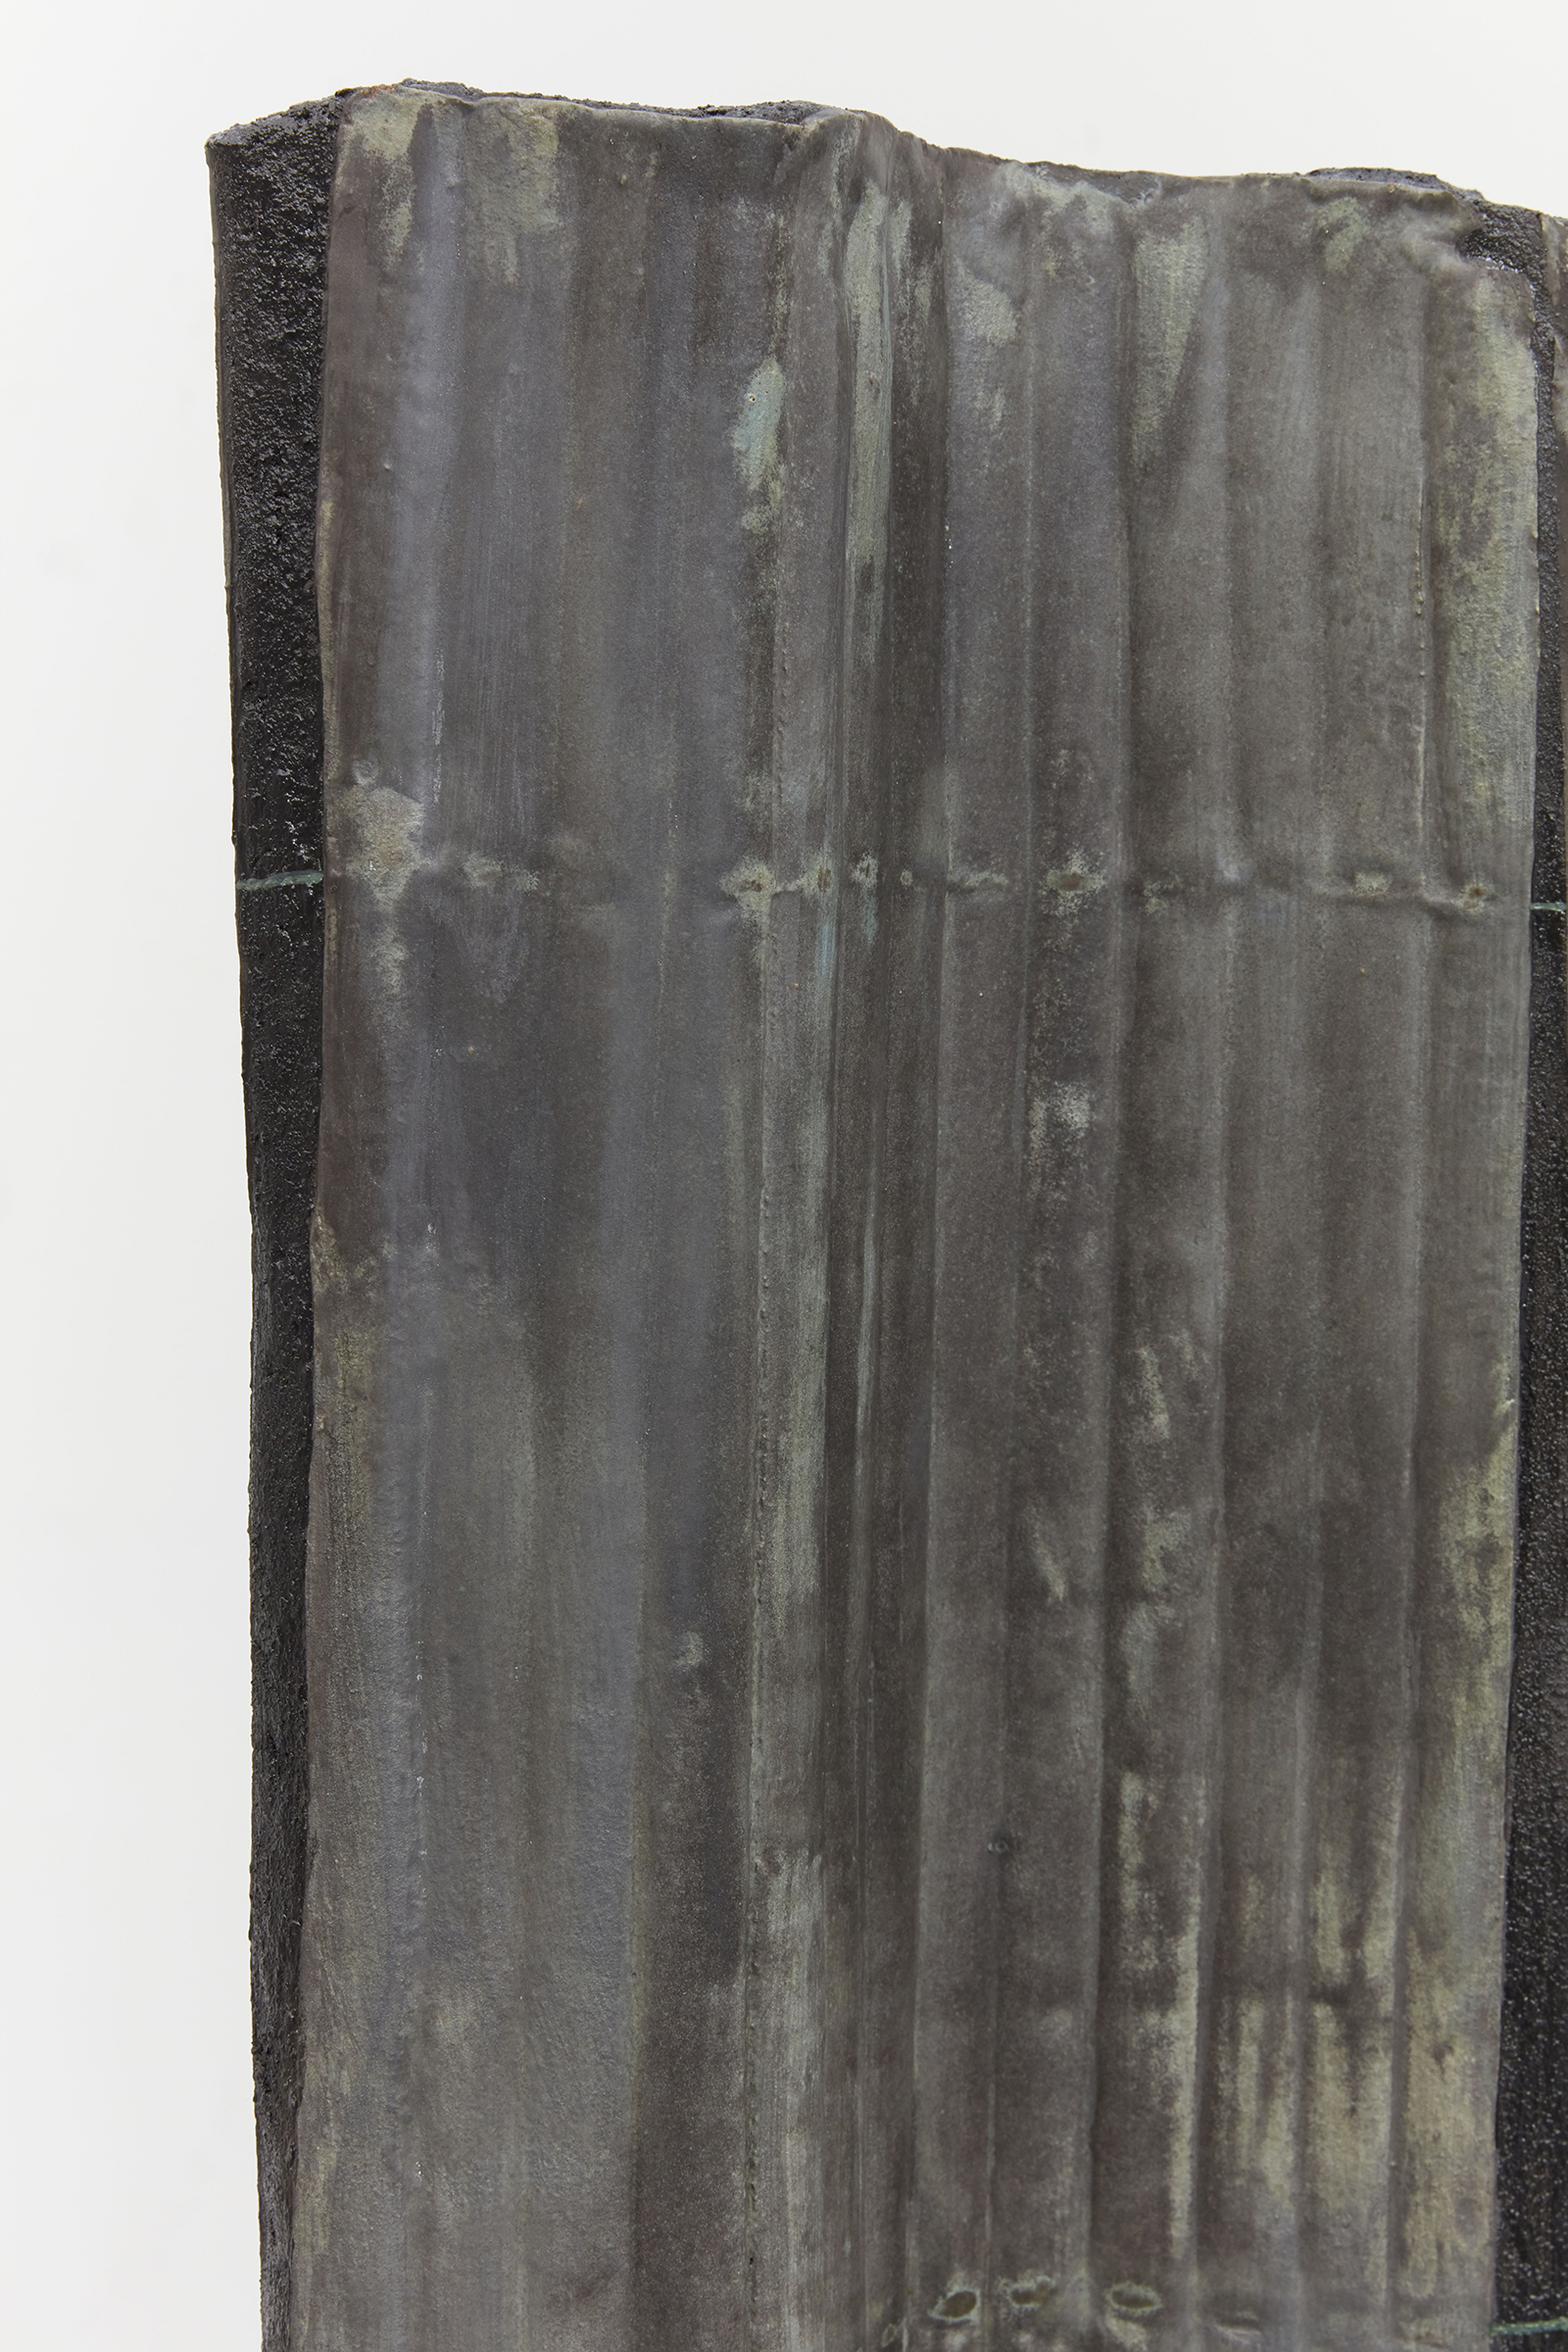 Anne Libby, Total Partial Annular (detail), 2020, glazed ceramic, steel, sanded grout, 66h x 12w x 12d in.